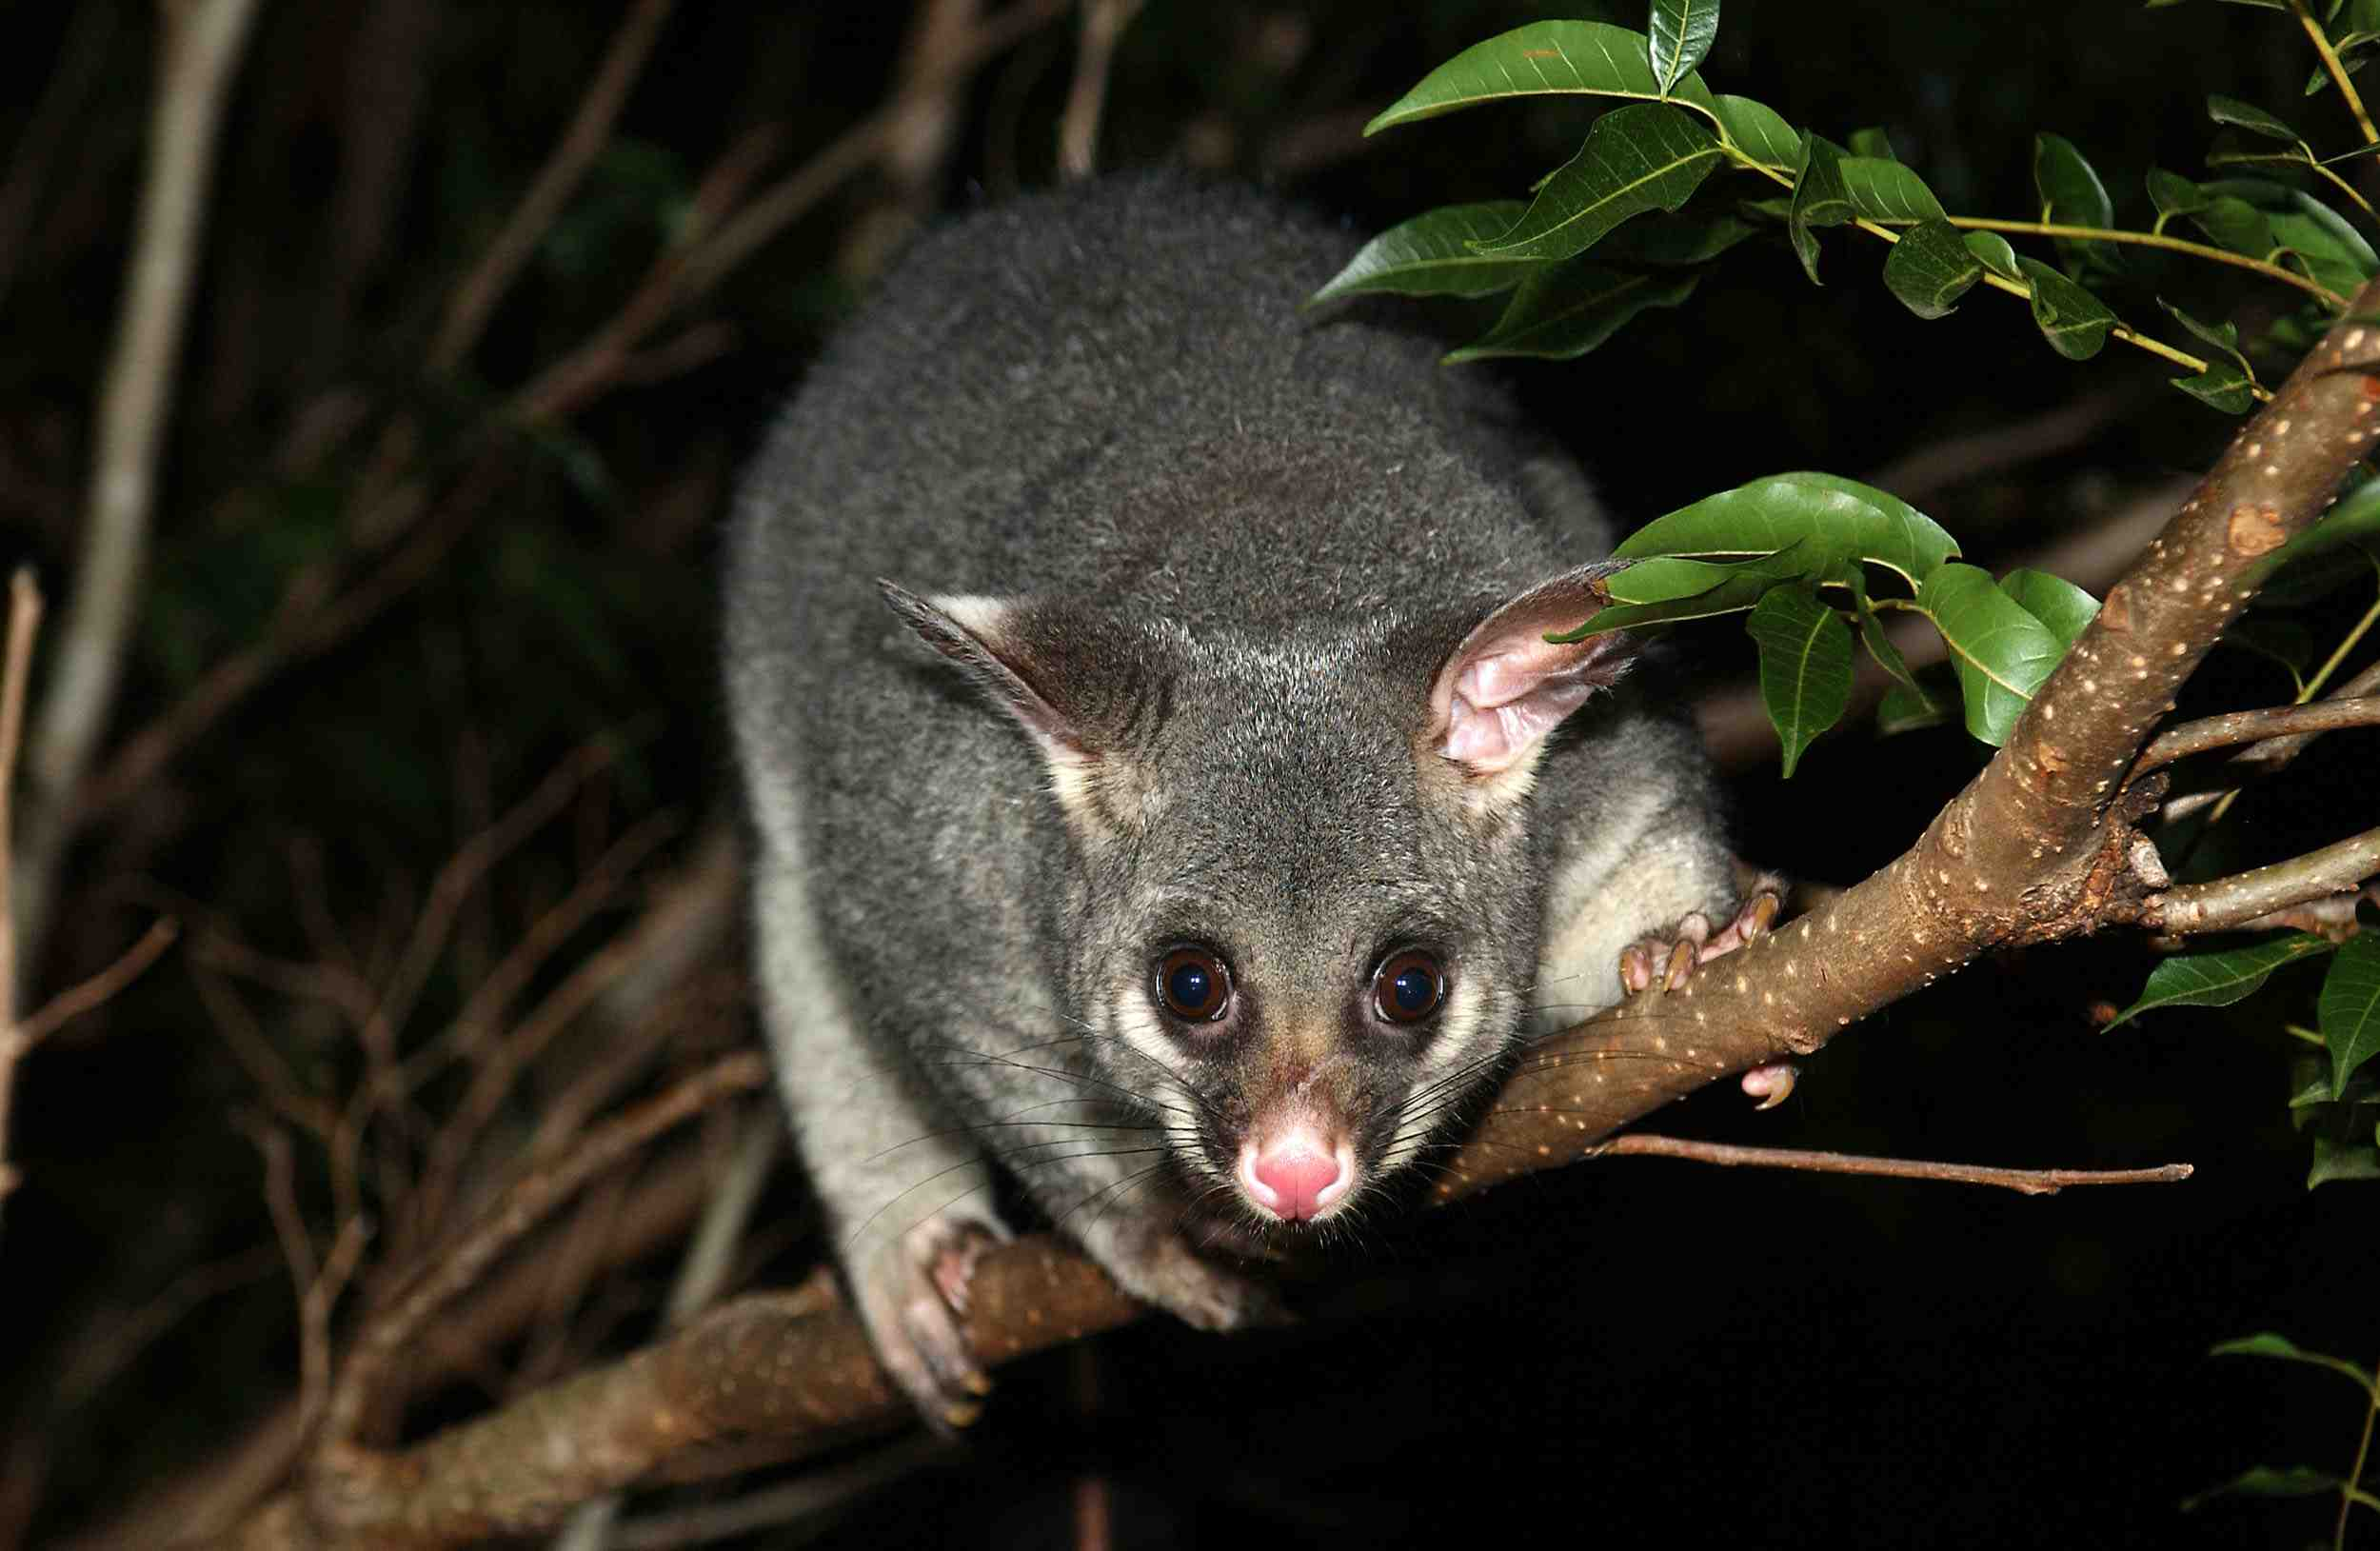 Brushtail possum in its natural Australian habitat